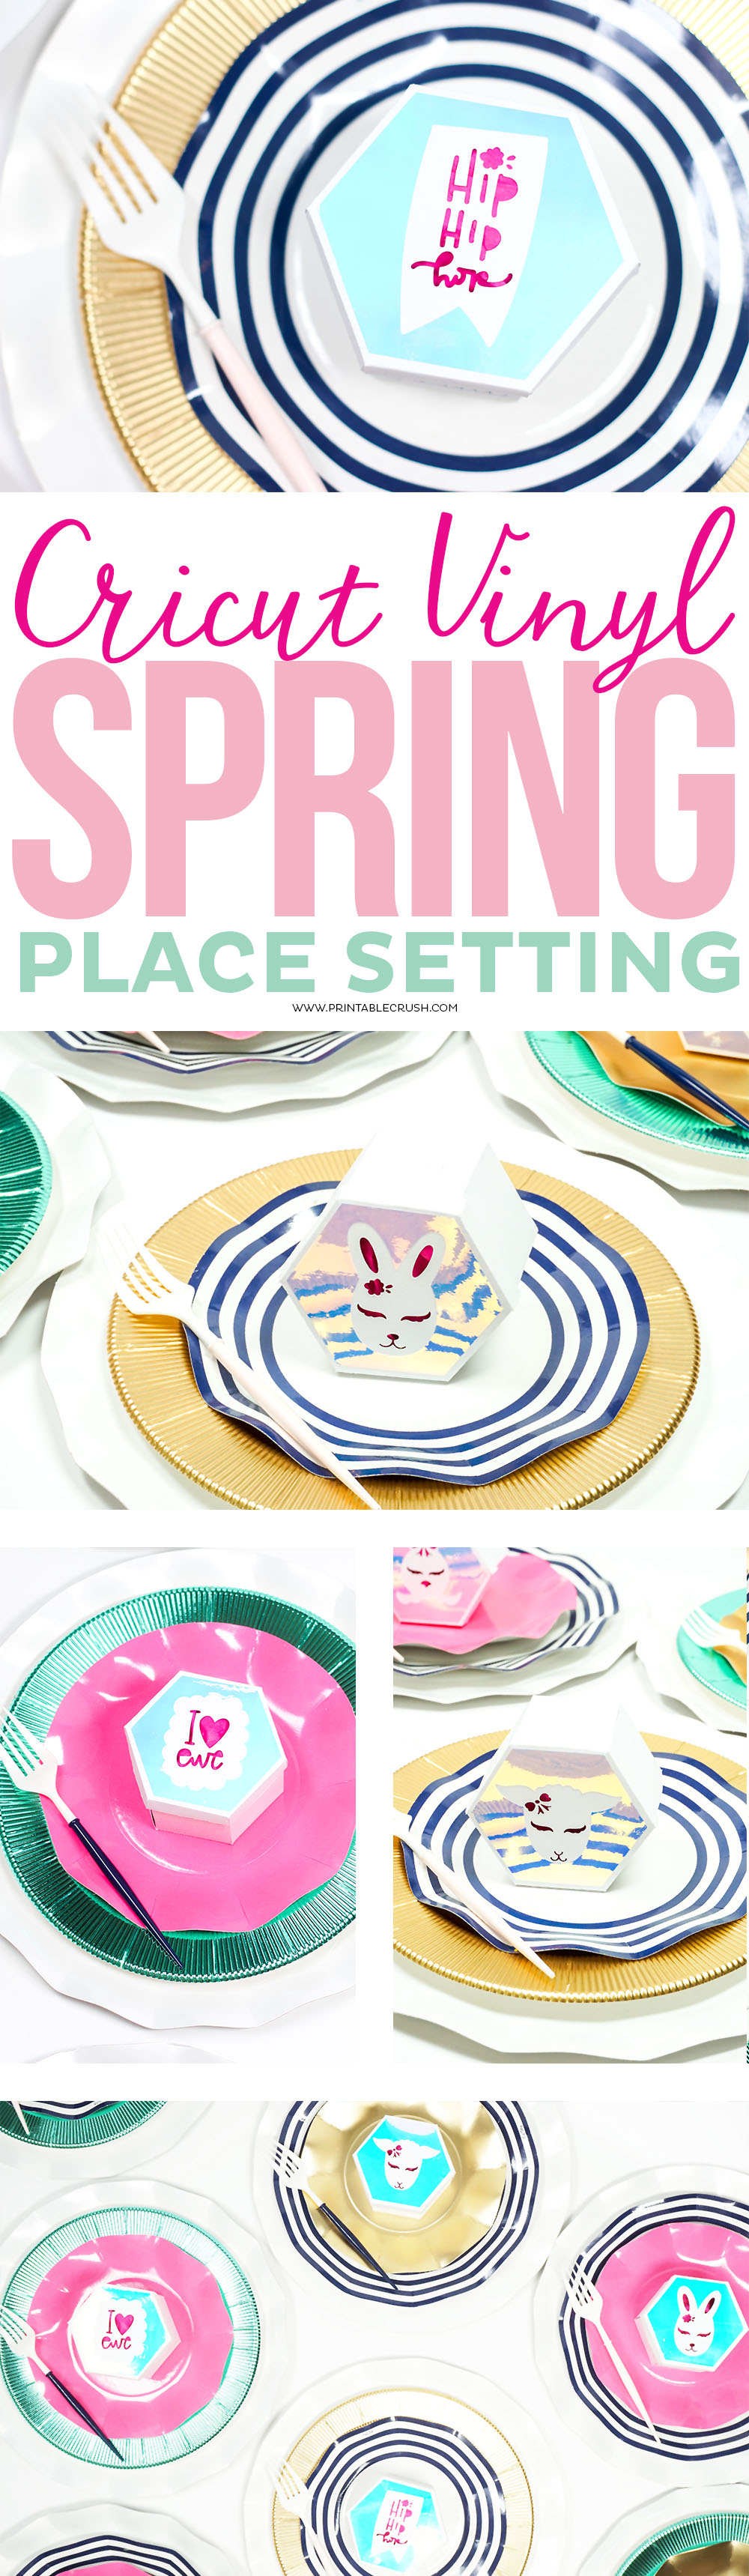 This Holographic Cricut Vinyl makes this Spring Place Setting extra pretty! You can customize each hexagon box with these adorable spring animal designs. via @printablecrush